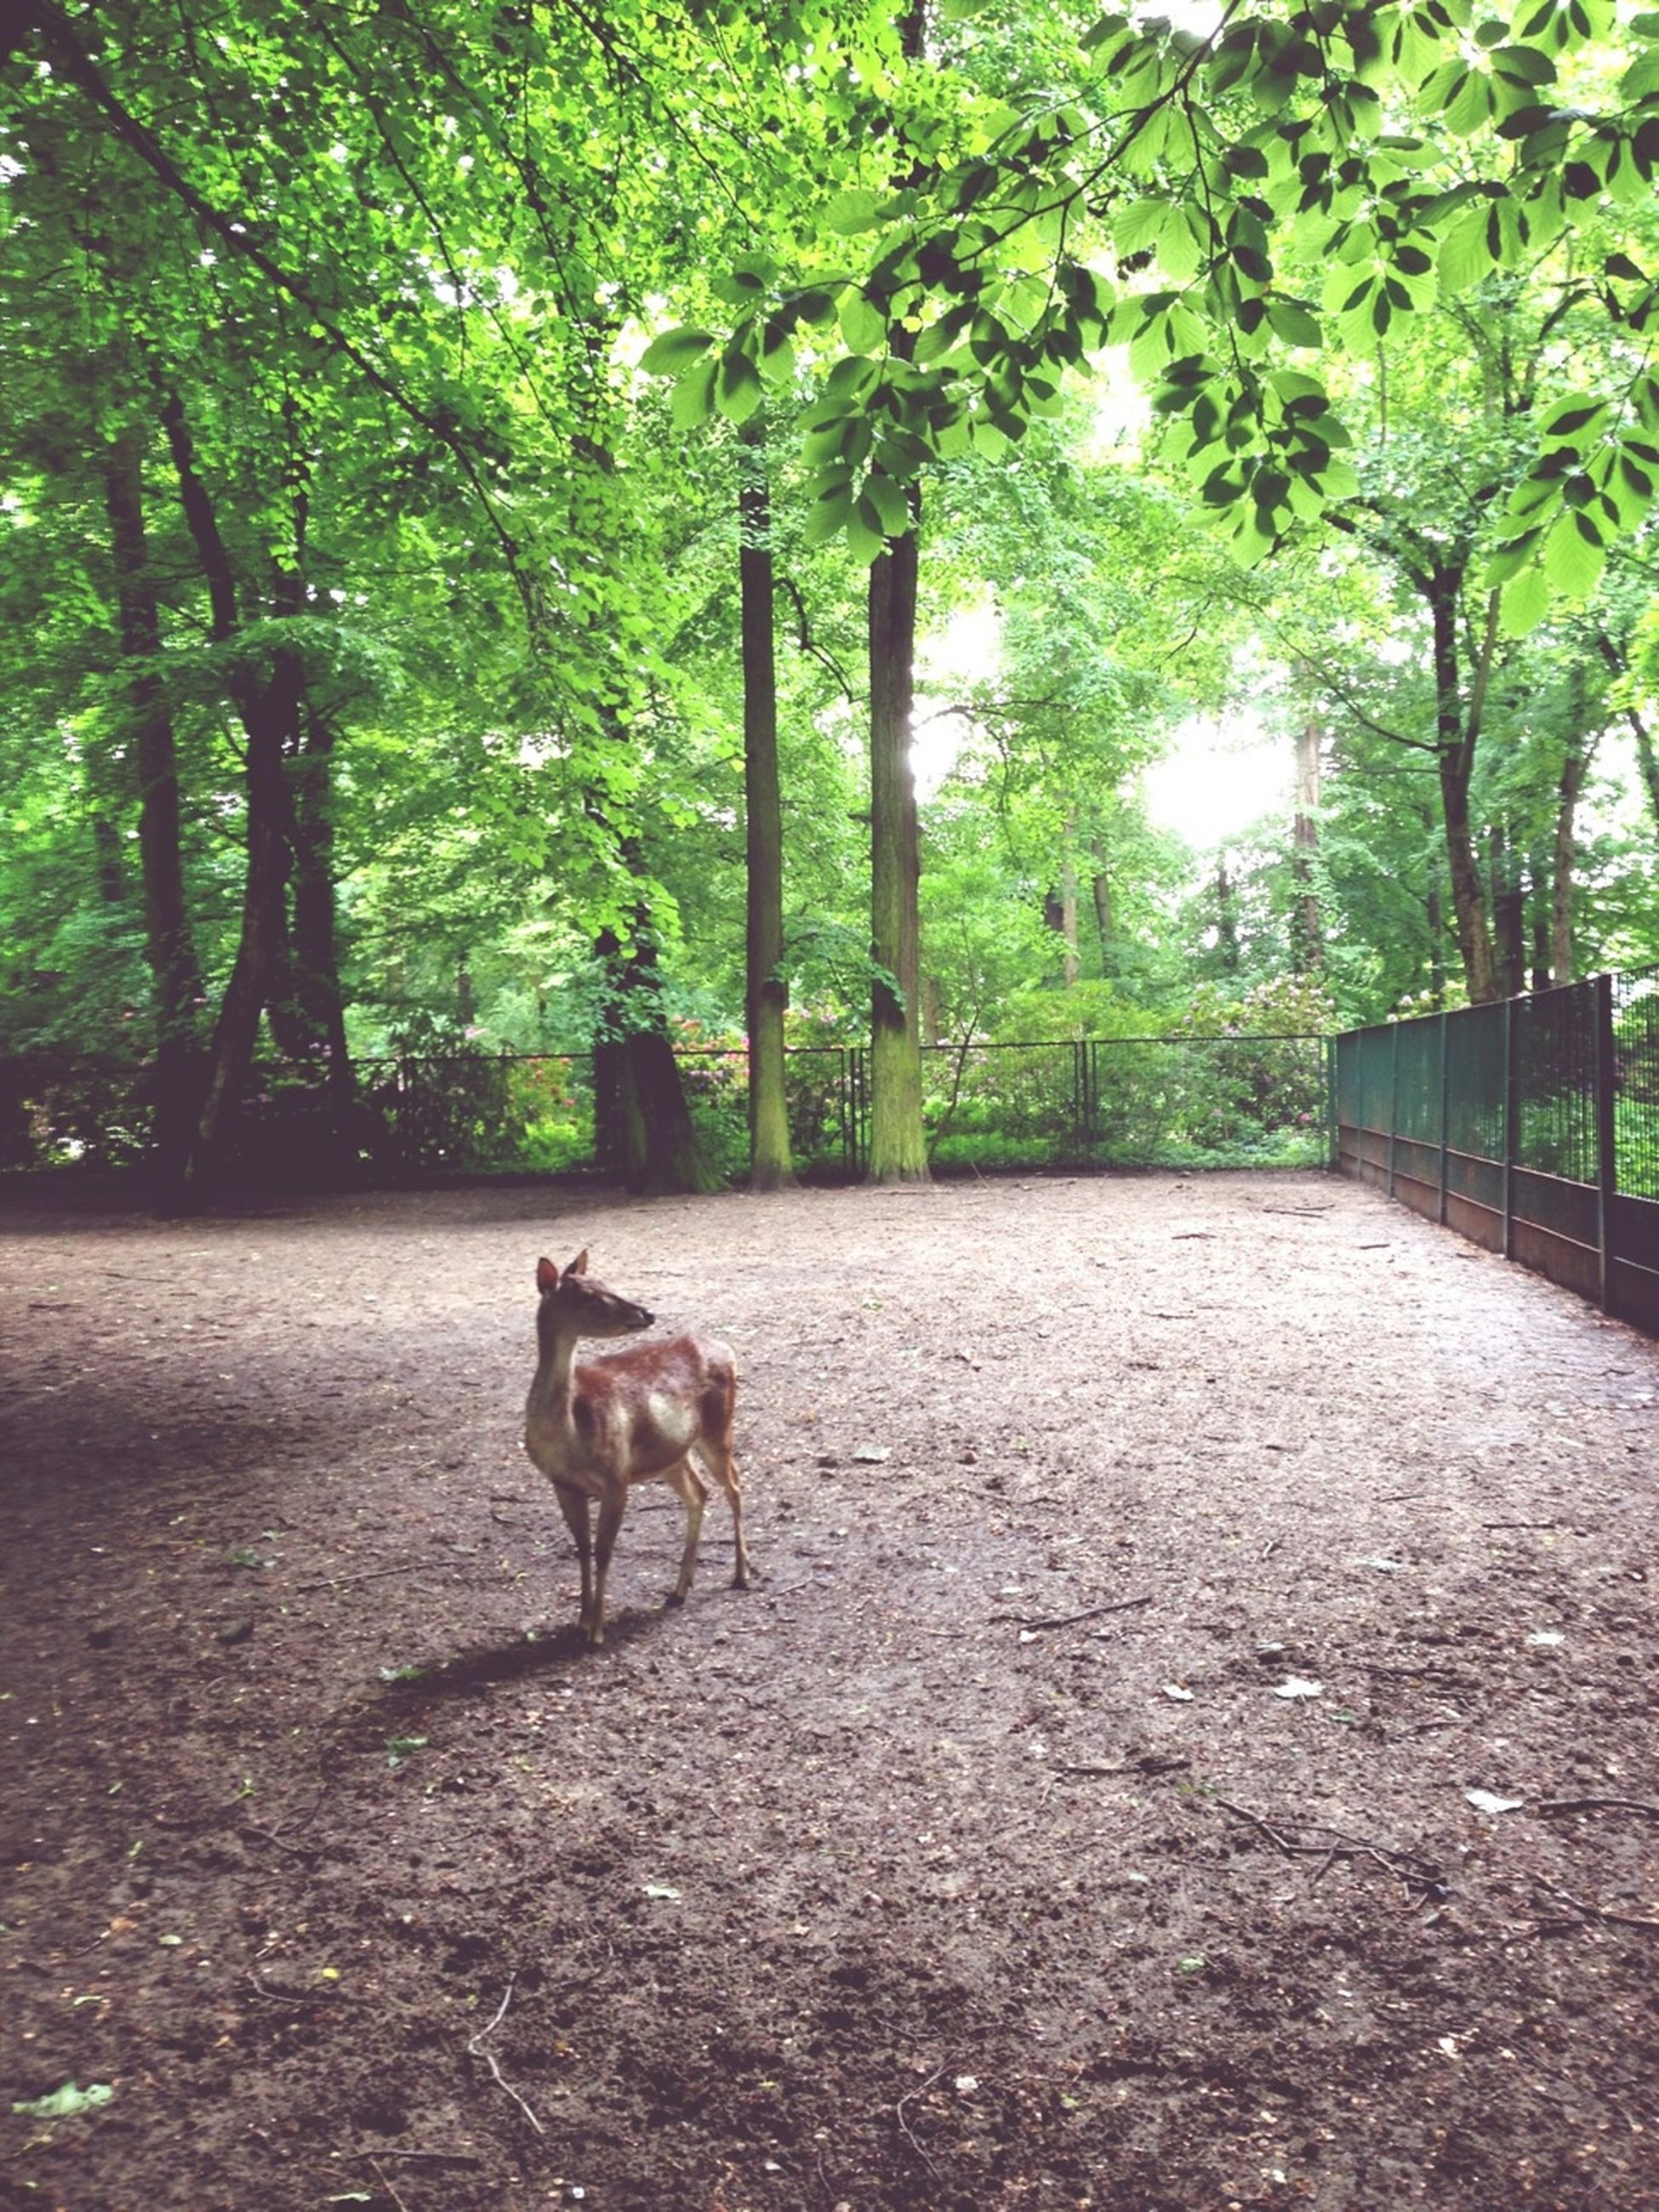 animal themes, domestic animals, mammal, one animal, tree, pets, dog, the way forward, full length, walking, leaf, sunlight, growth, road, nature, day, standing, footpath, outdoors, no people